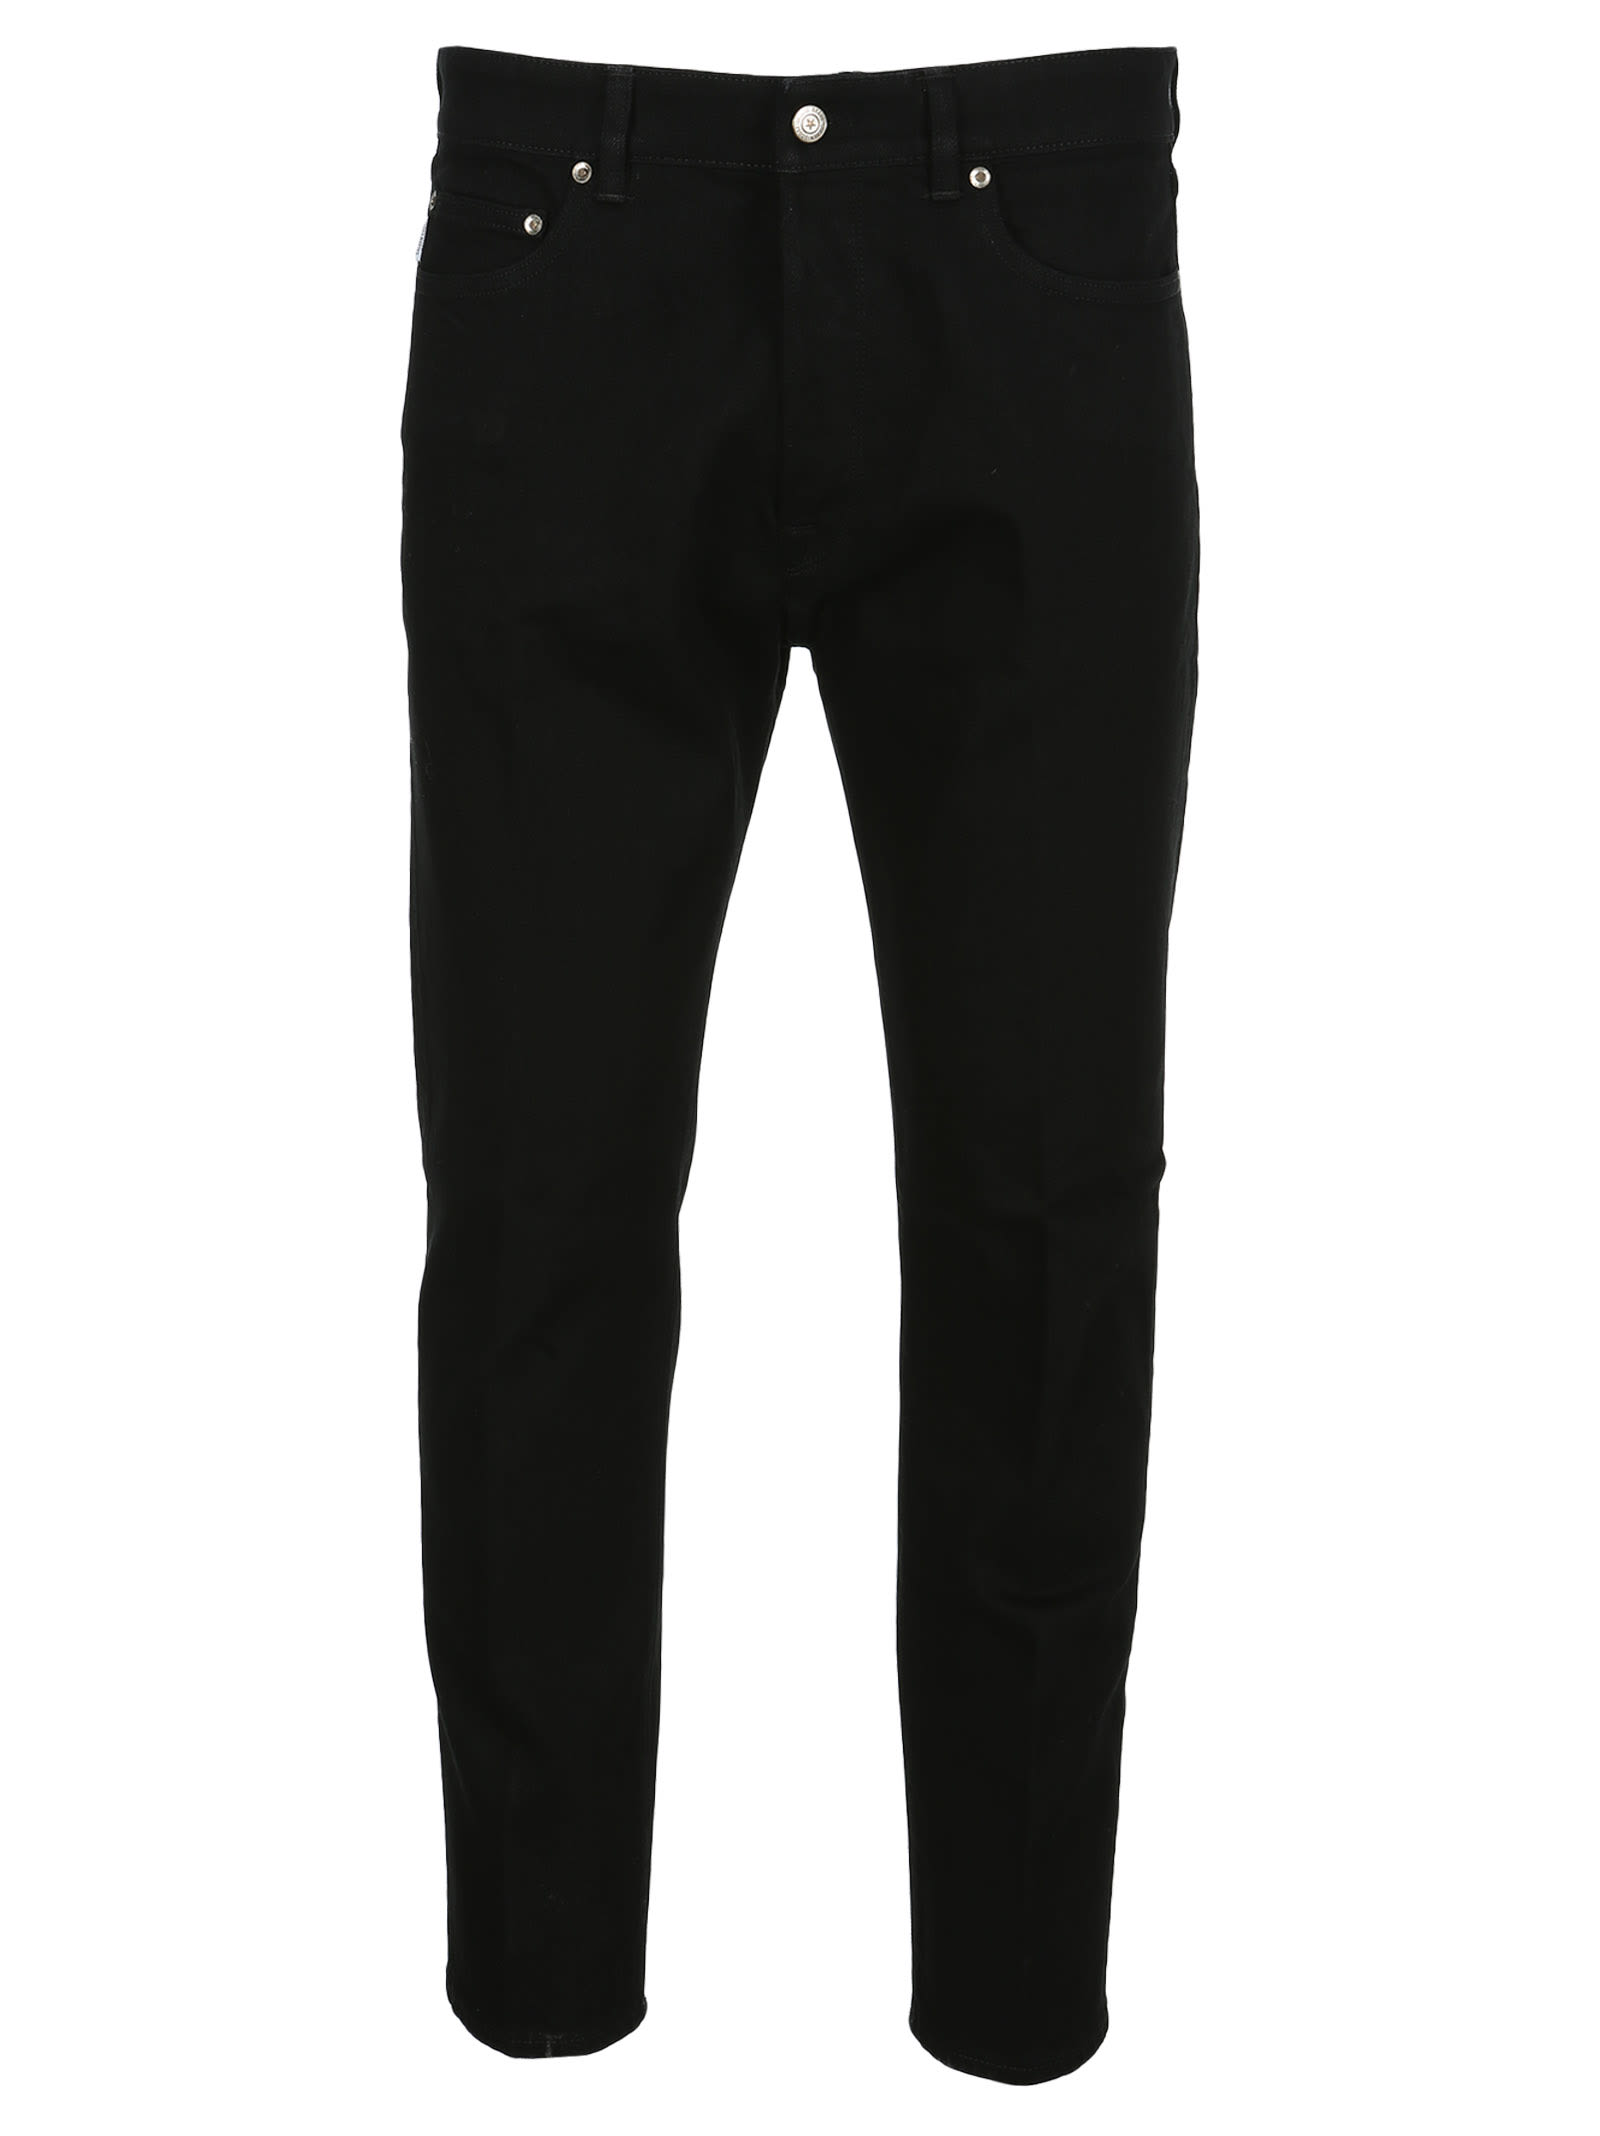 Black Slim Fit Jeans By Golden Goose Featuring: - Black Wash - Five-pocket Model - Slim Fit - Medium Waist - Patch With Logo On The BackComposition: 98% COTTON, 2% POLYURETHAN